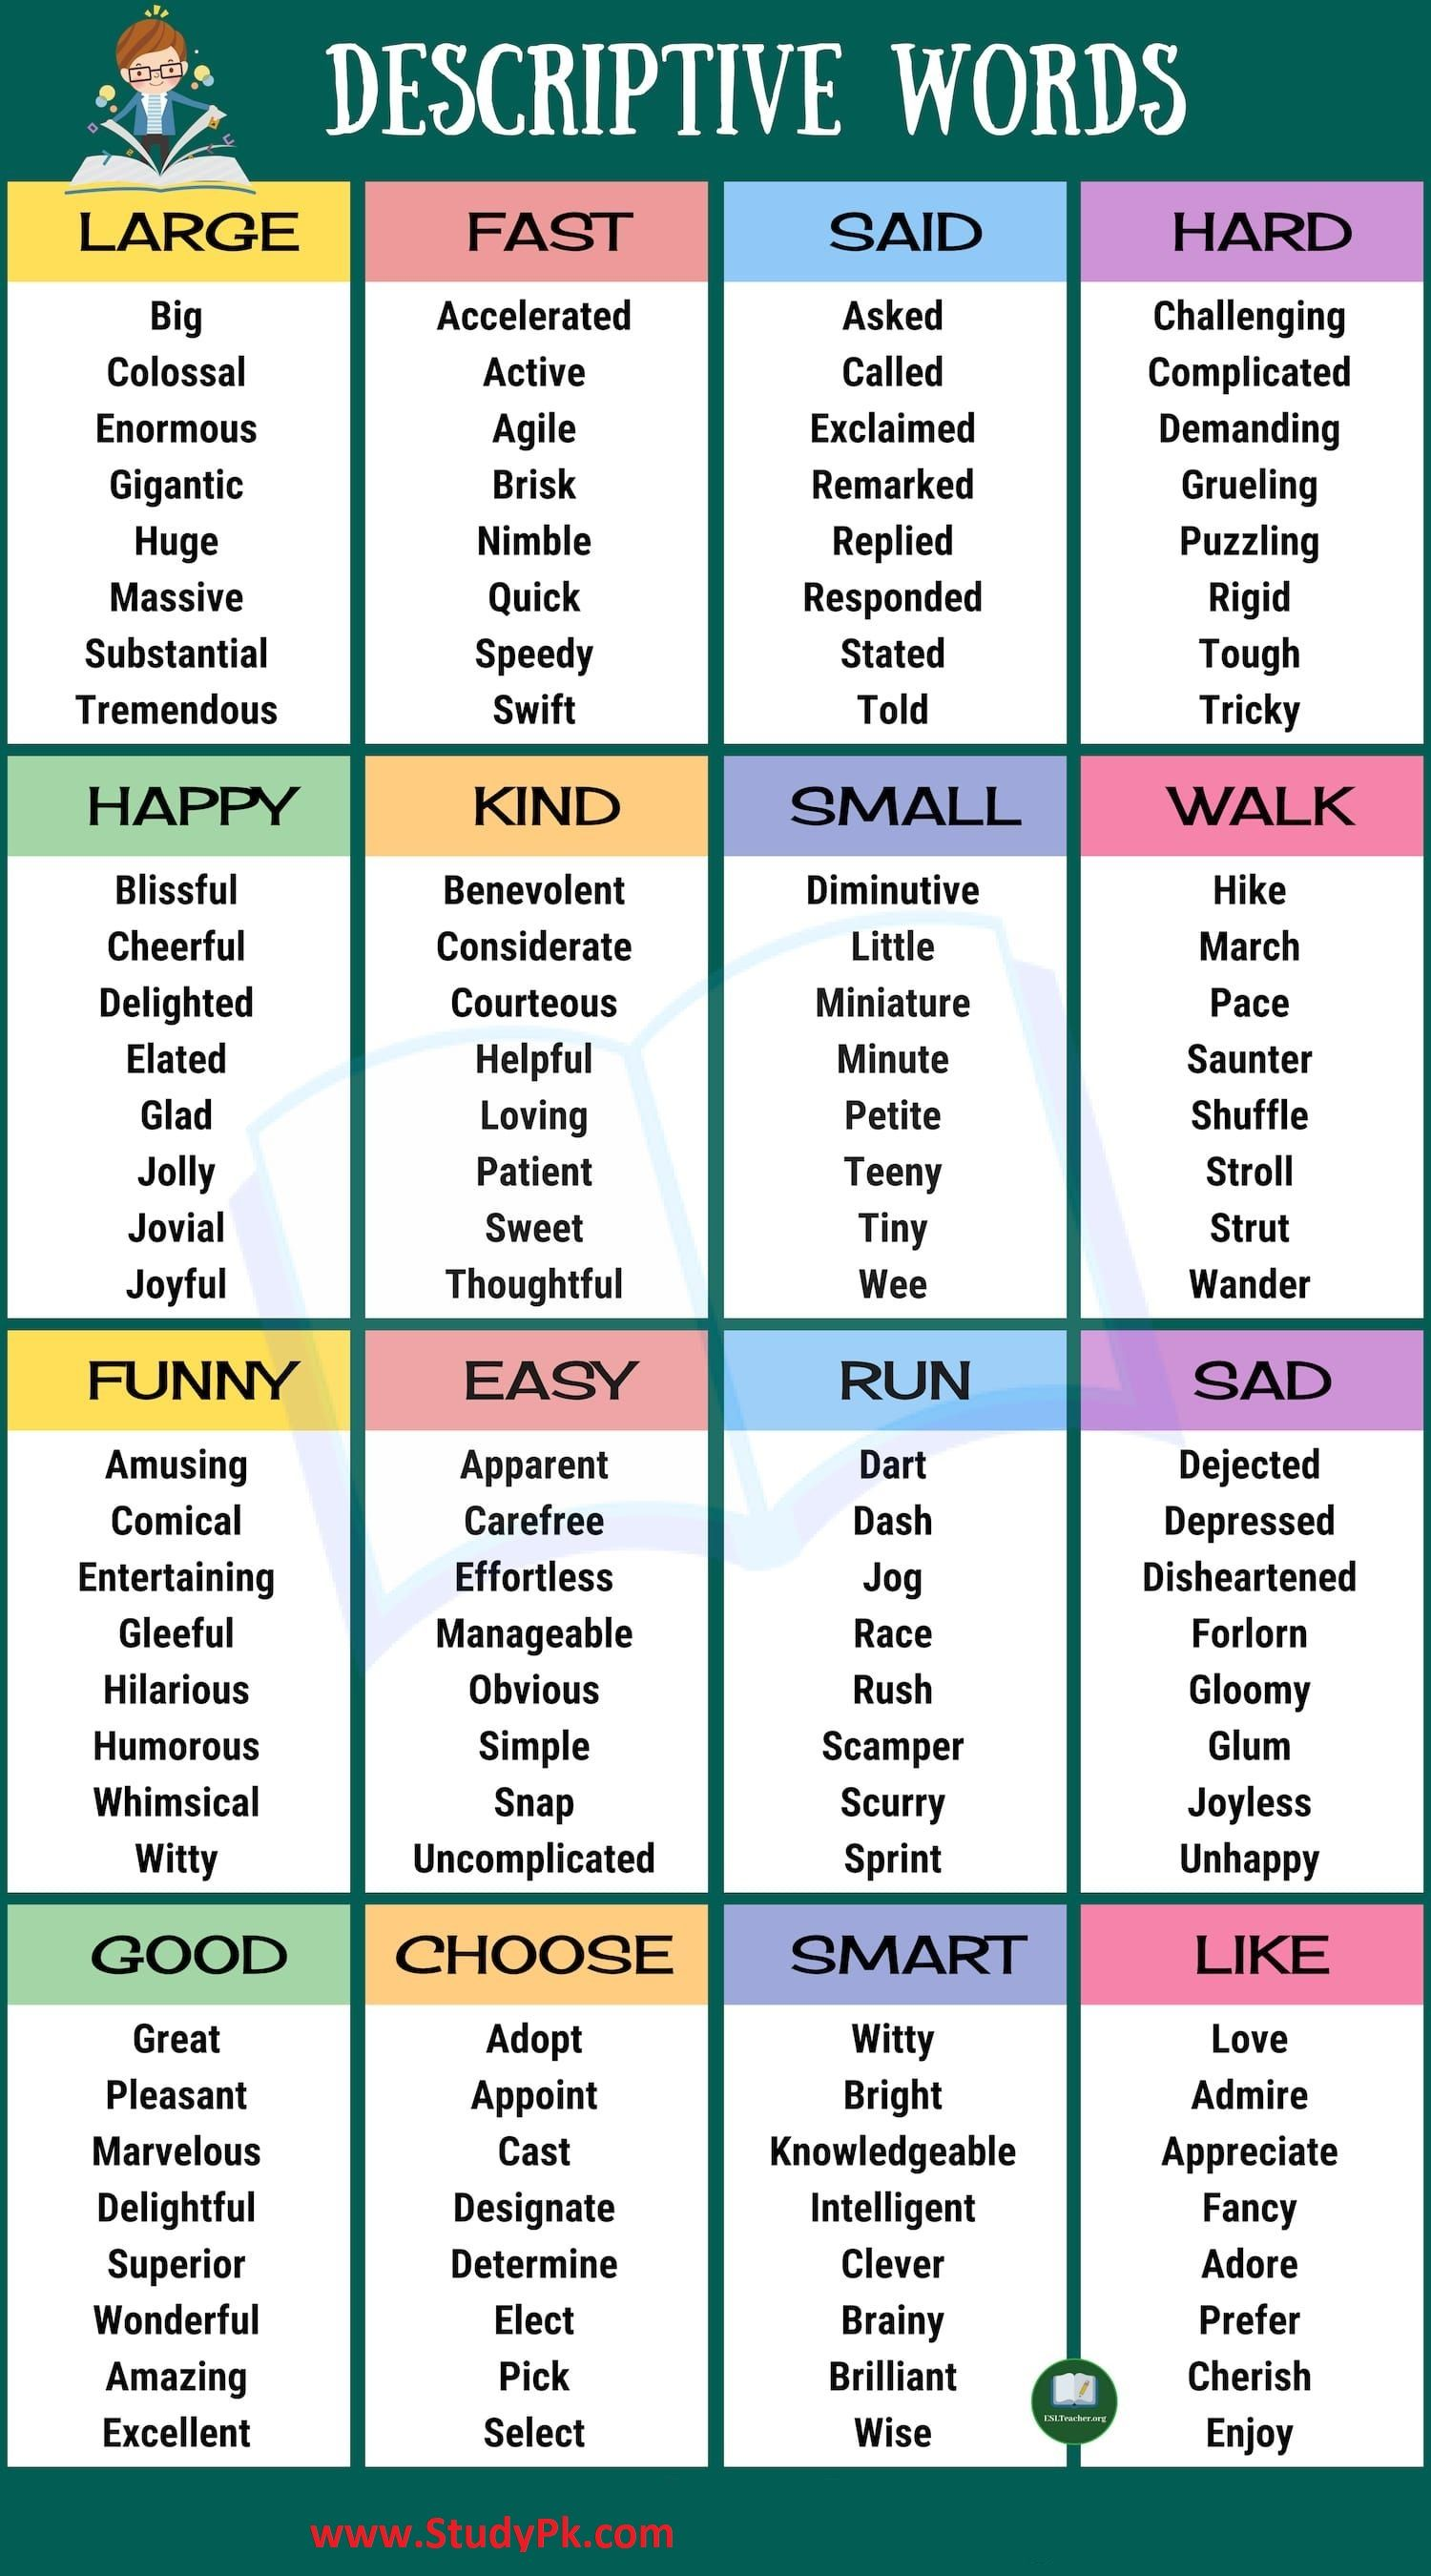 List of Descriptive Words: Adjectives, Adverbs and Gerunds in English - StudyPK